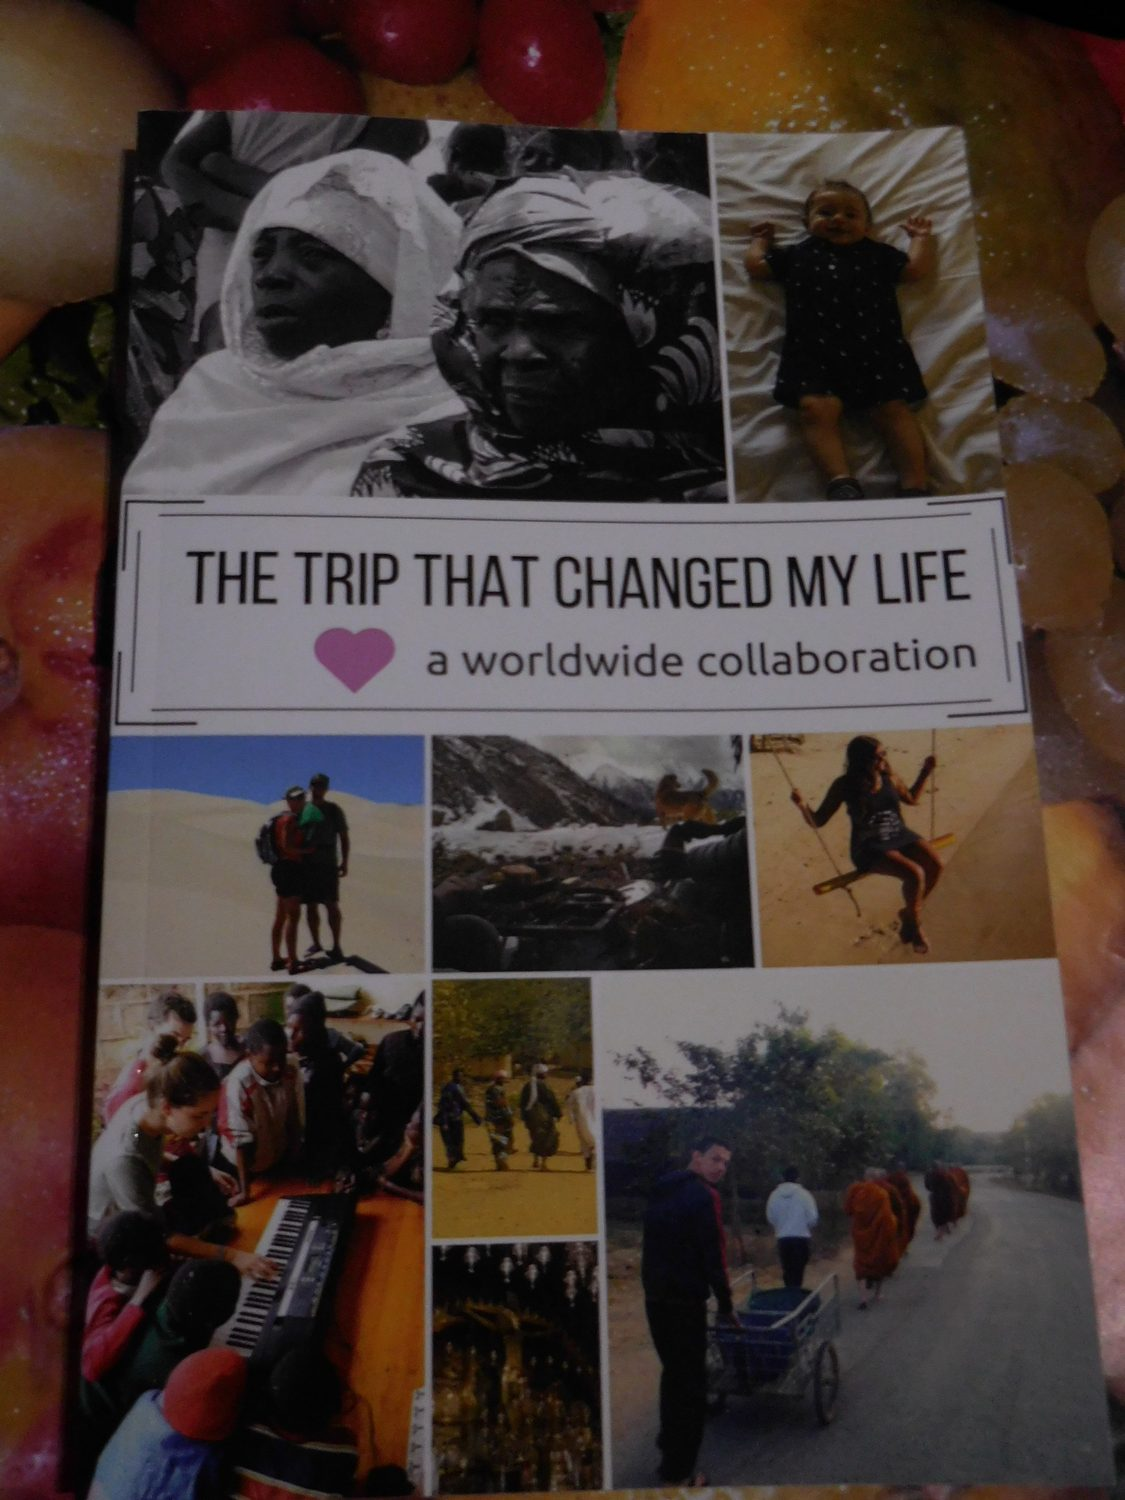 Project Alpha - parerback book - The Trip that Changed my life